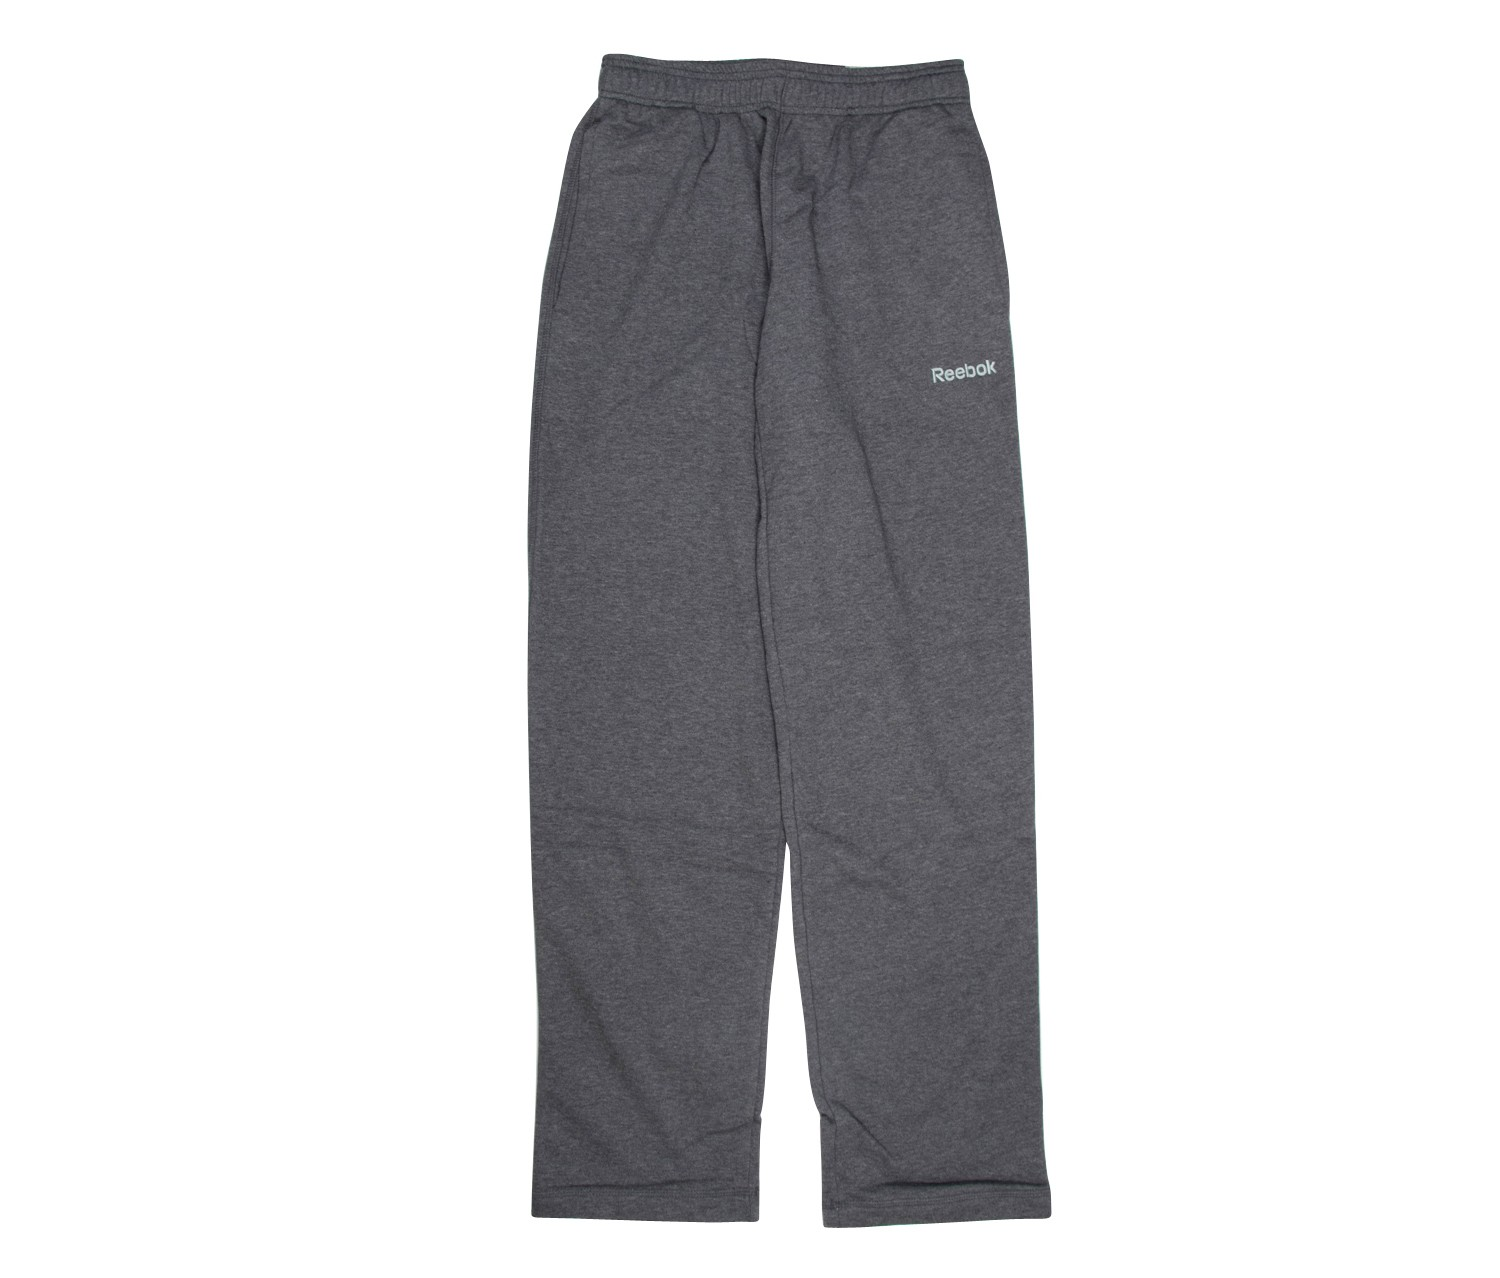 Men's French Terry Pant, Dark Grey